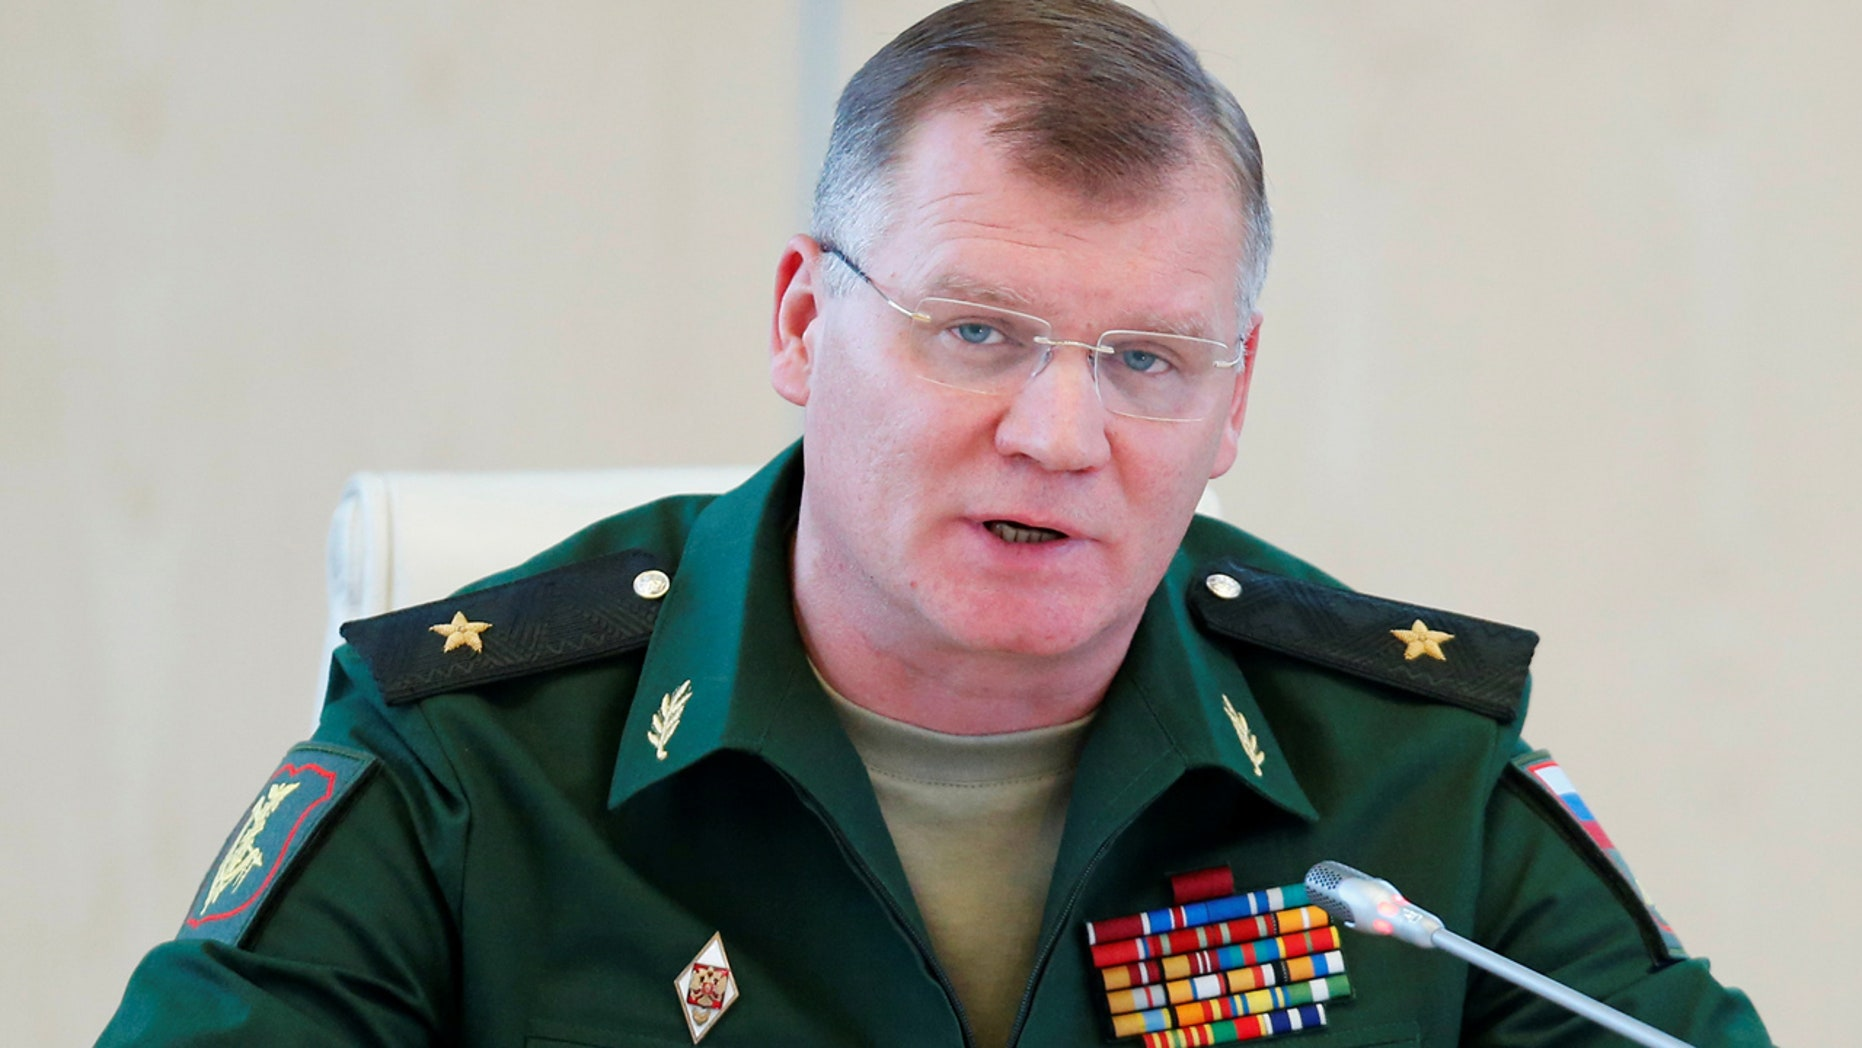 Spokesman for the Russian Defense Ministry, Major-General Igor Konashenkov, during a recent news conference.